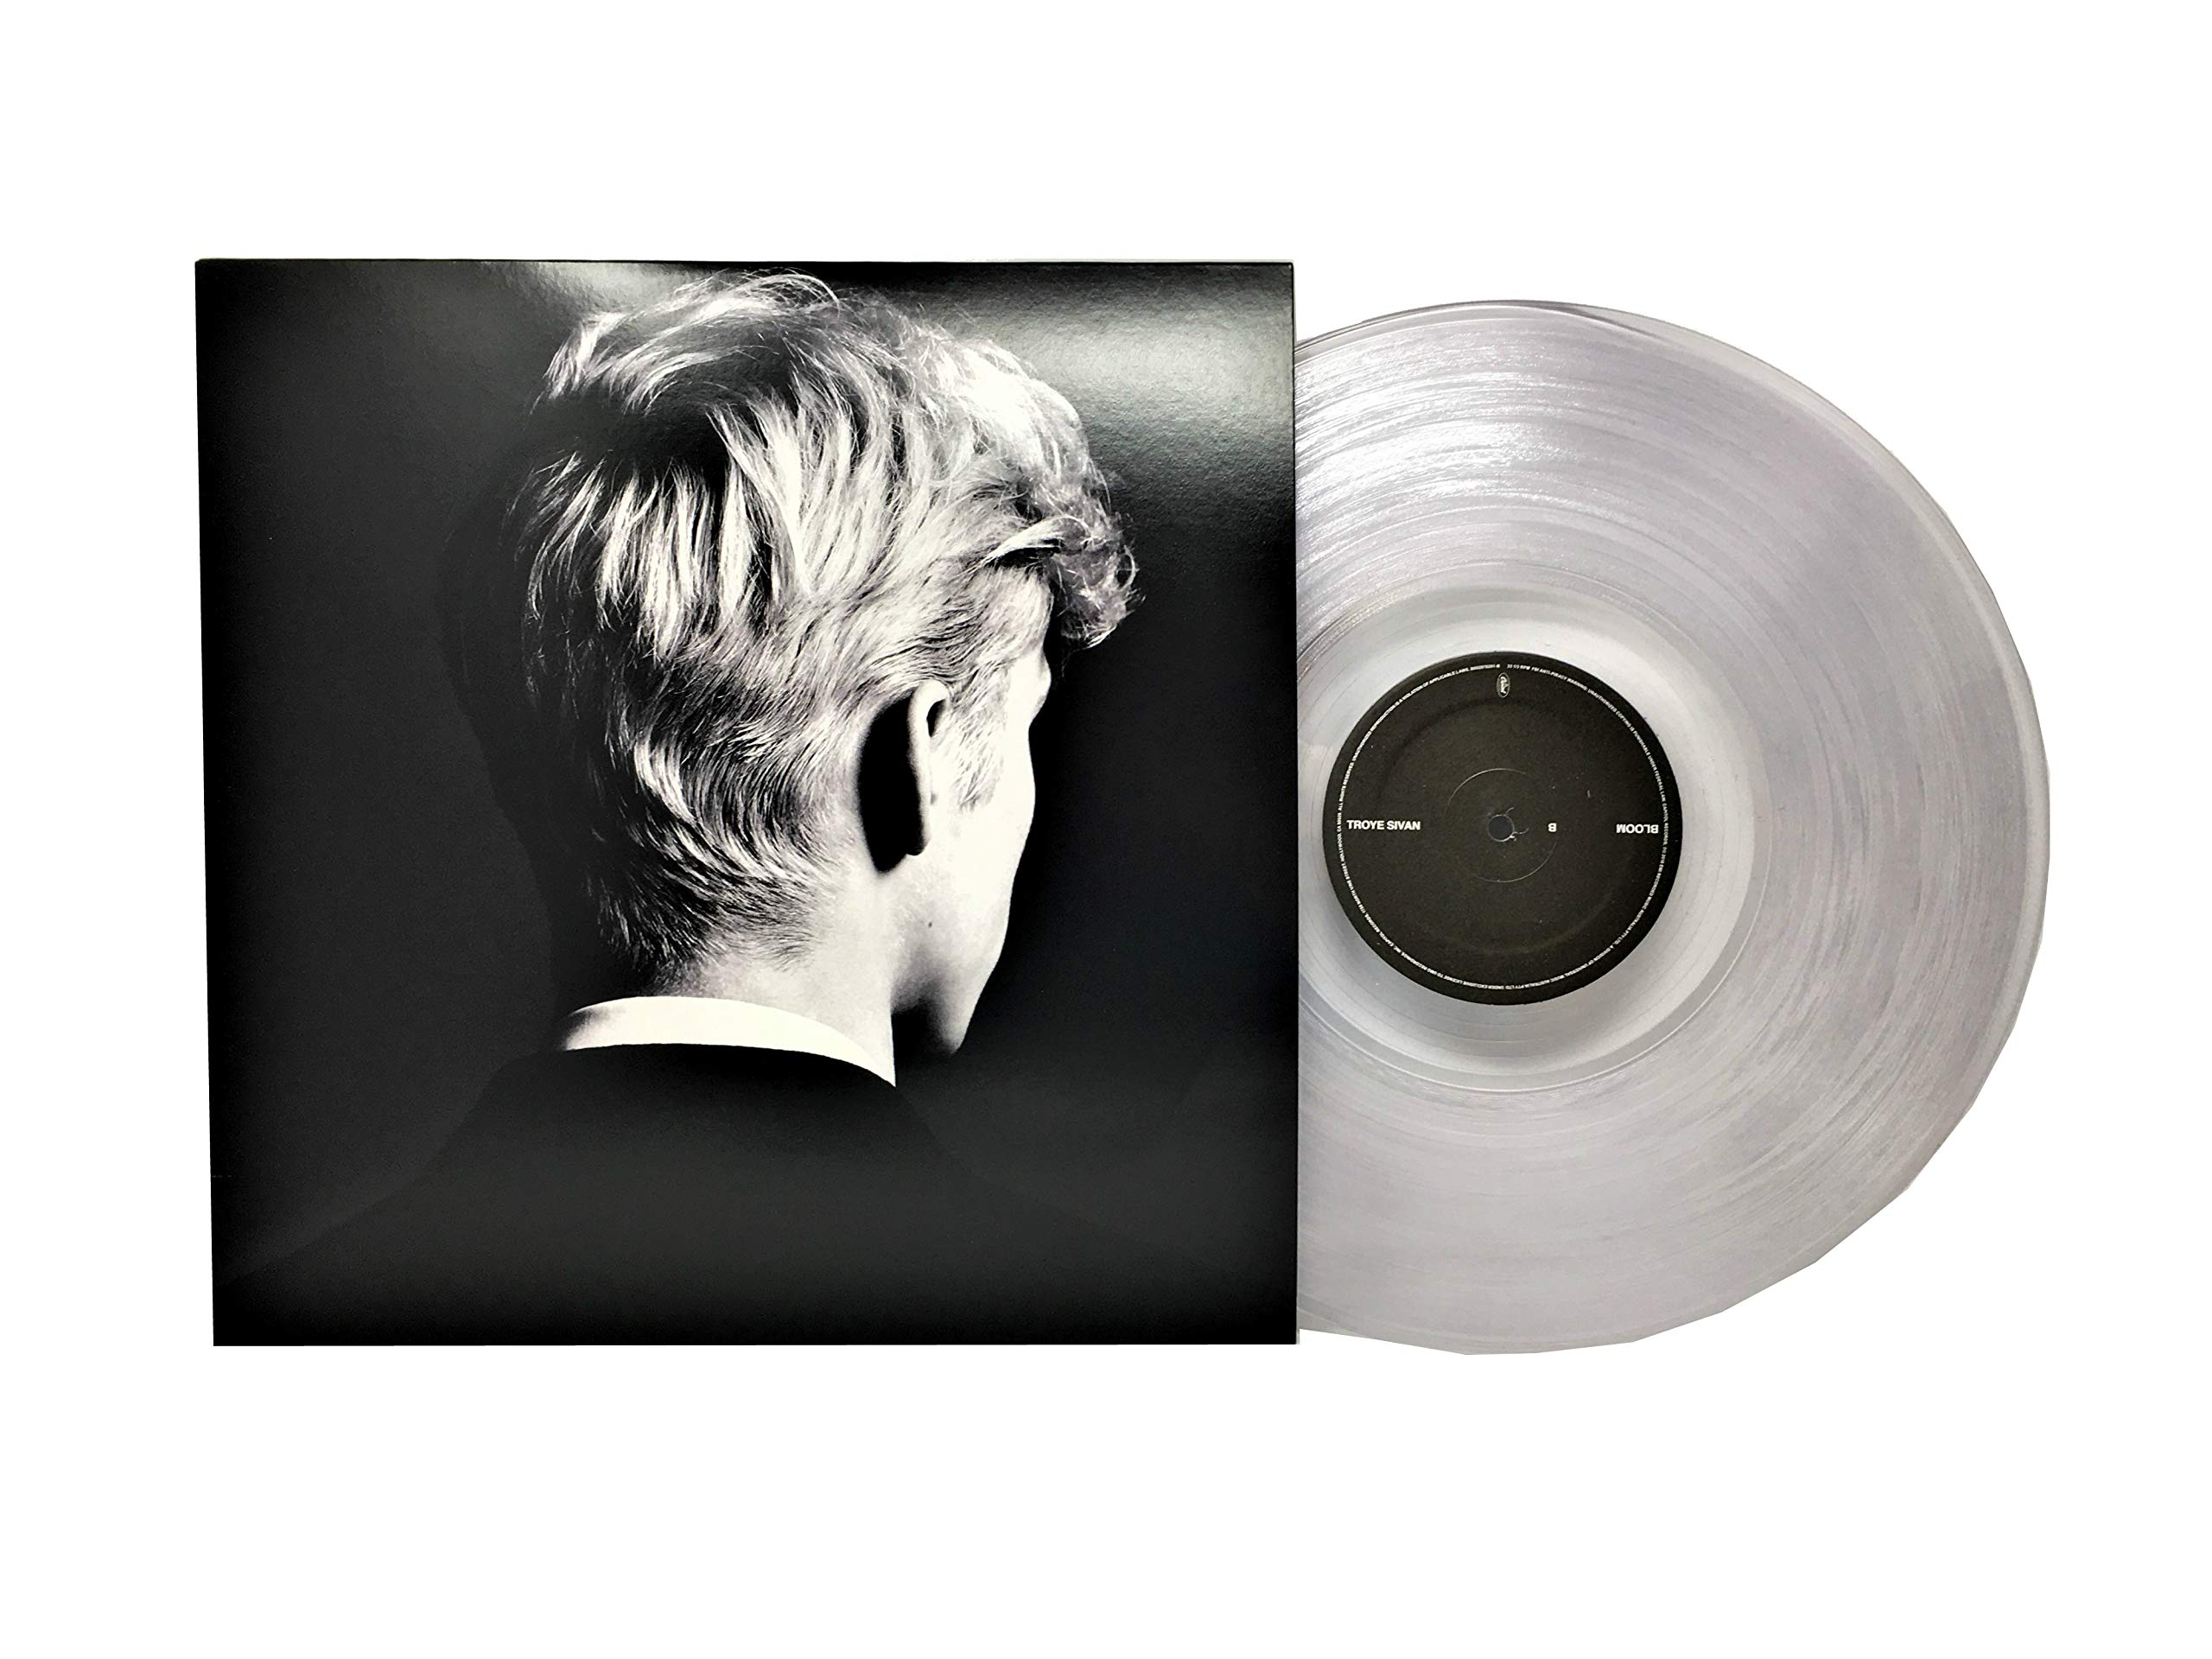 Bloom (Limited Edition Clear Colored Vinyl) by Capitol (Image #1)